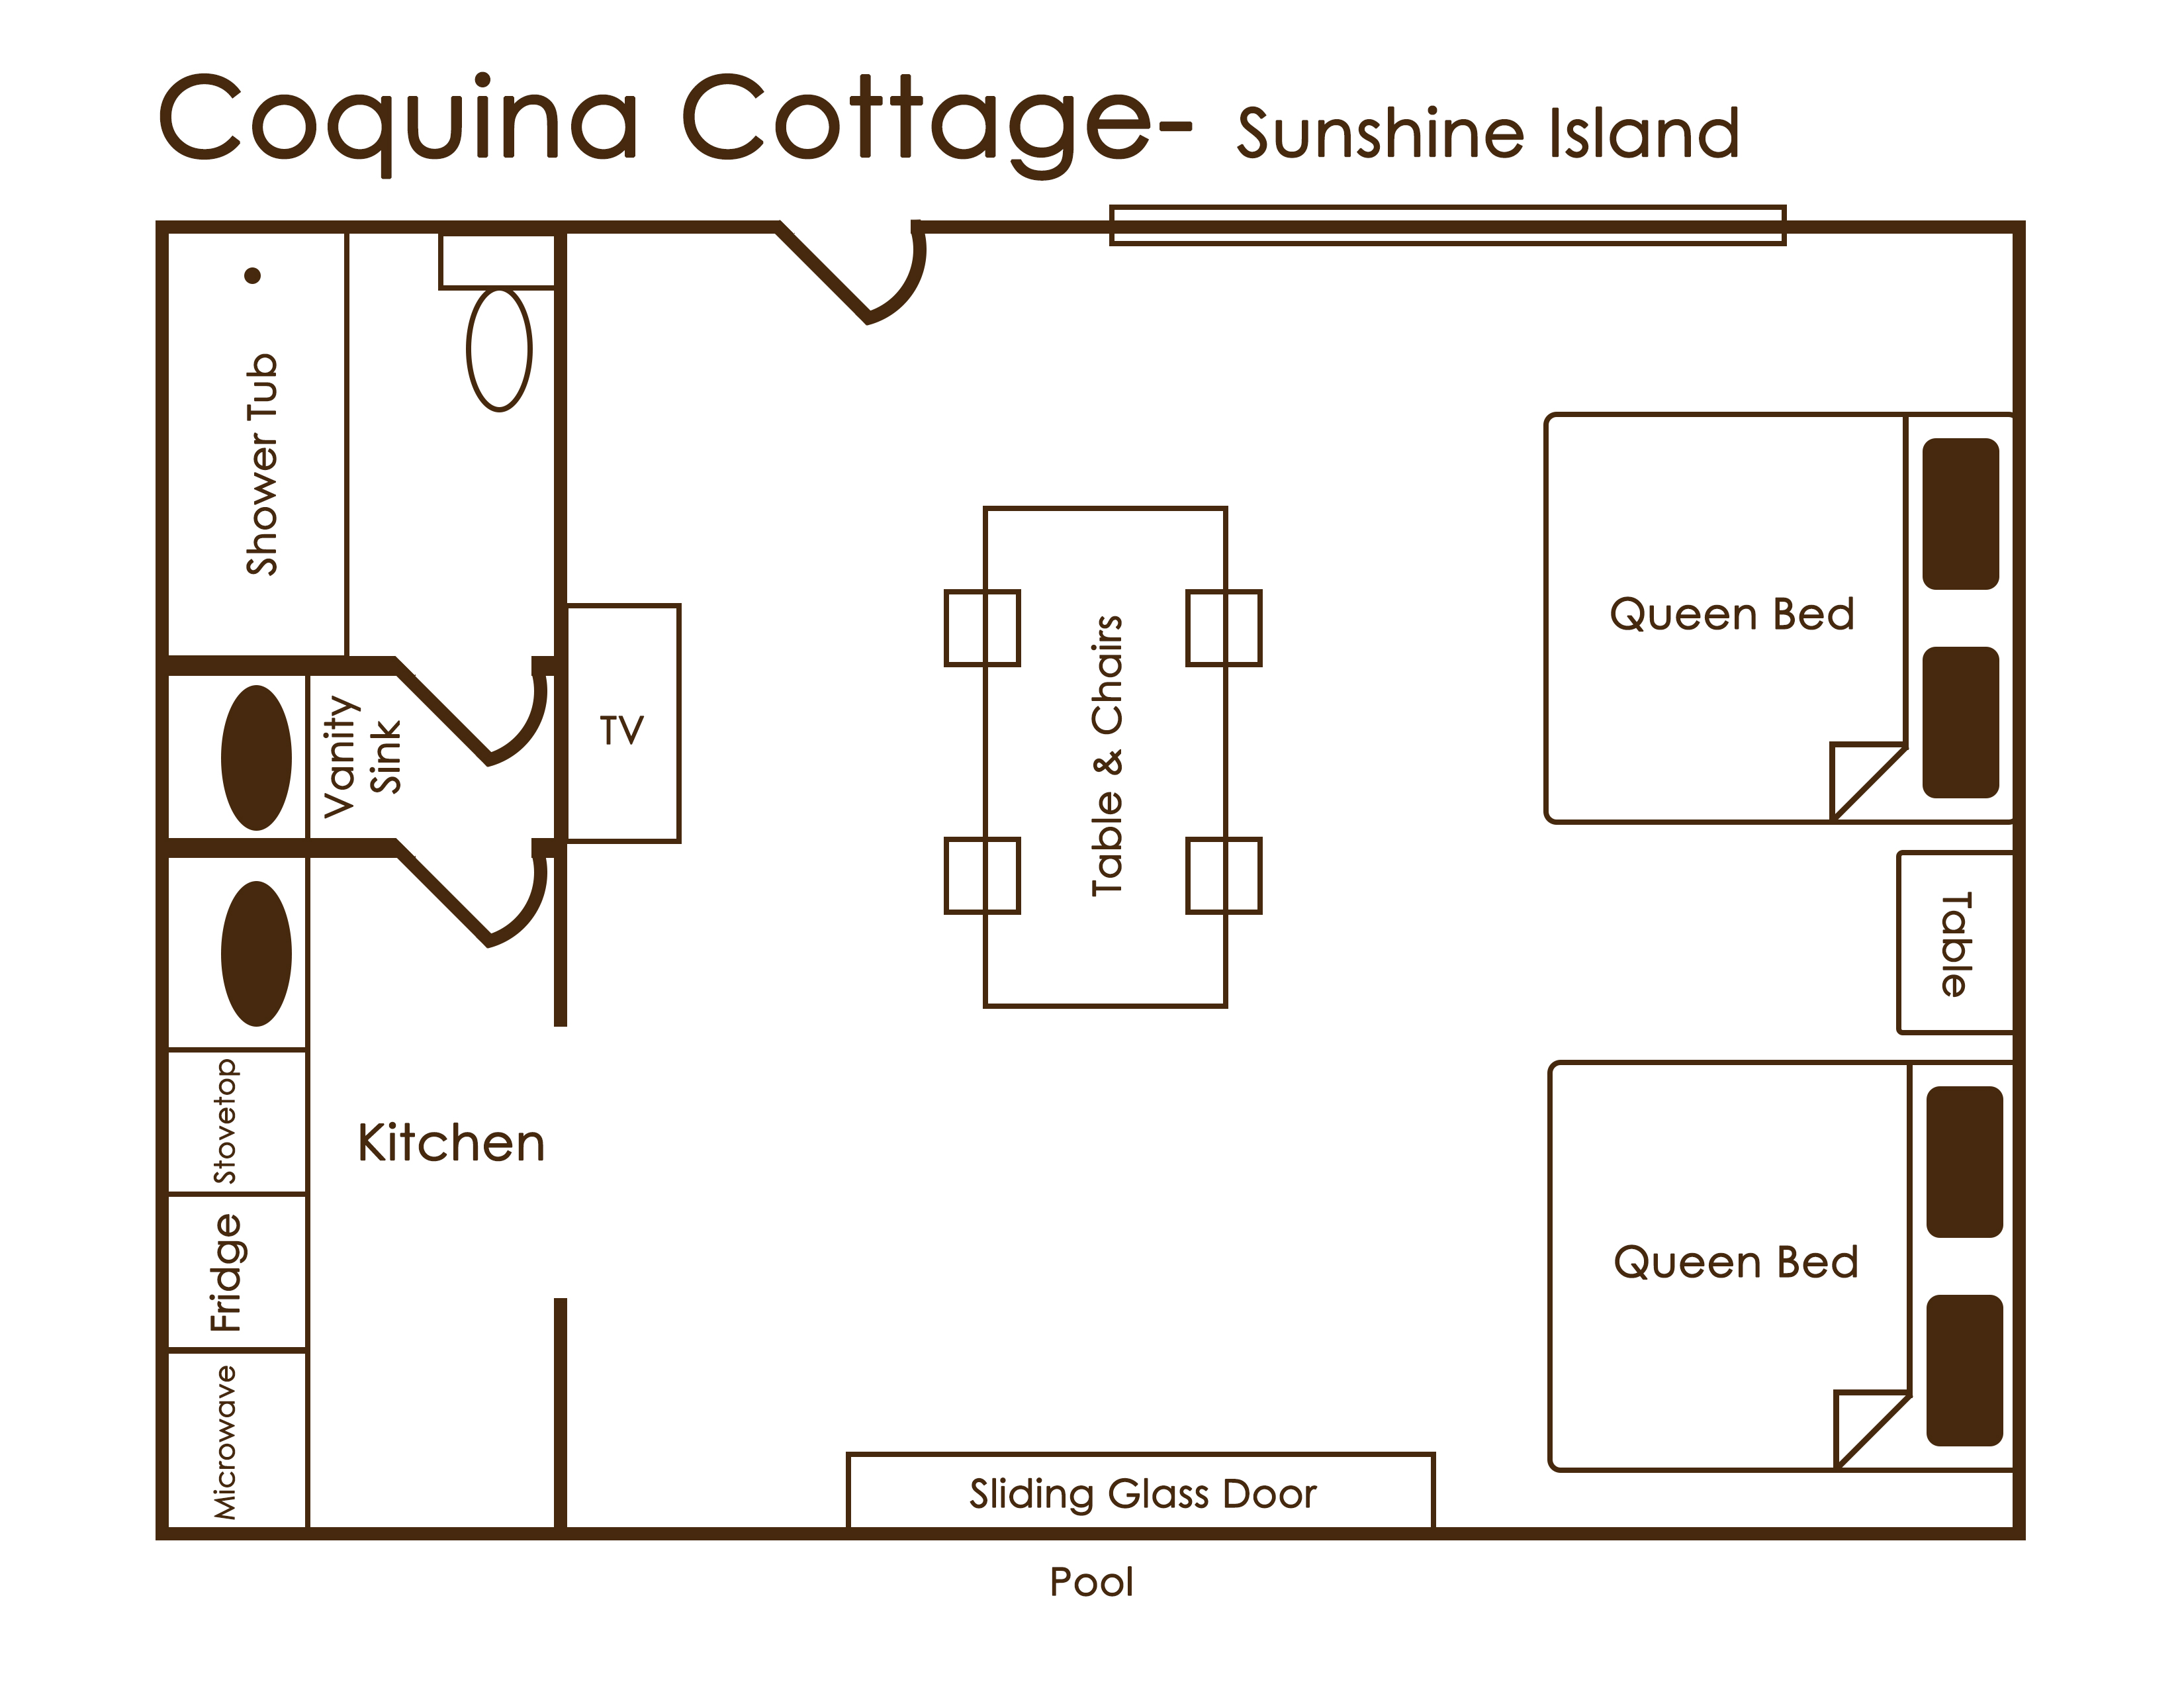 coquina cottage sunshine island